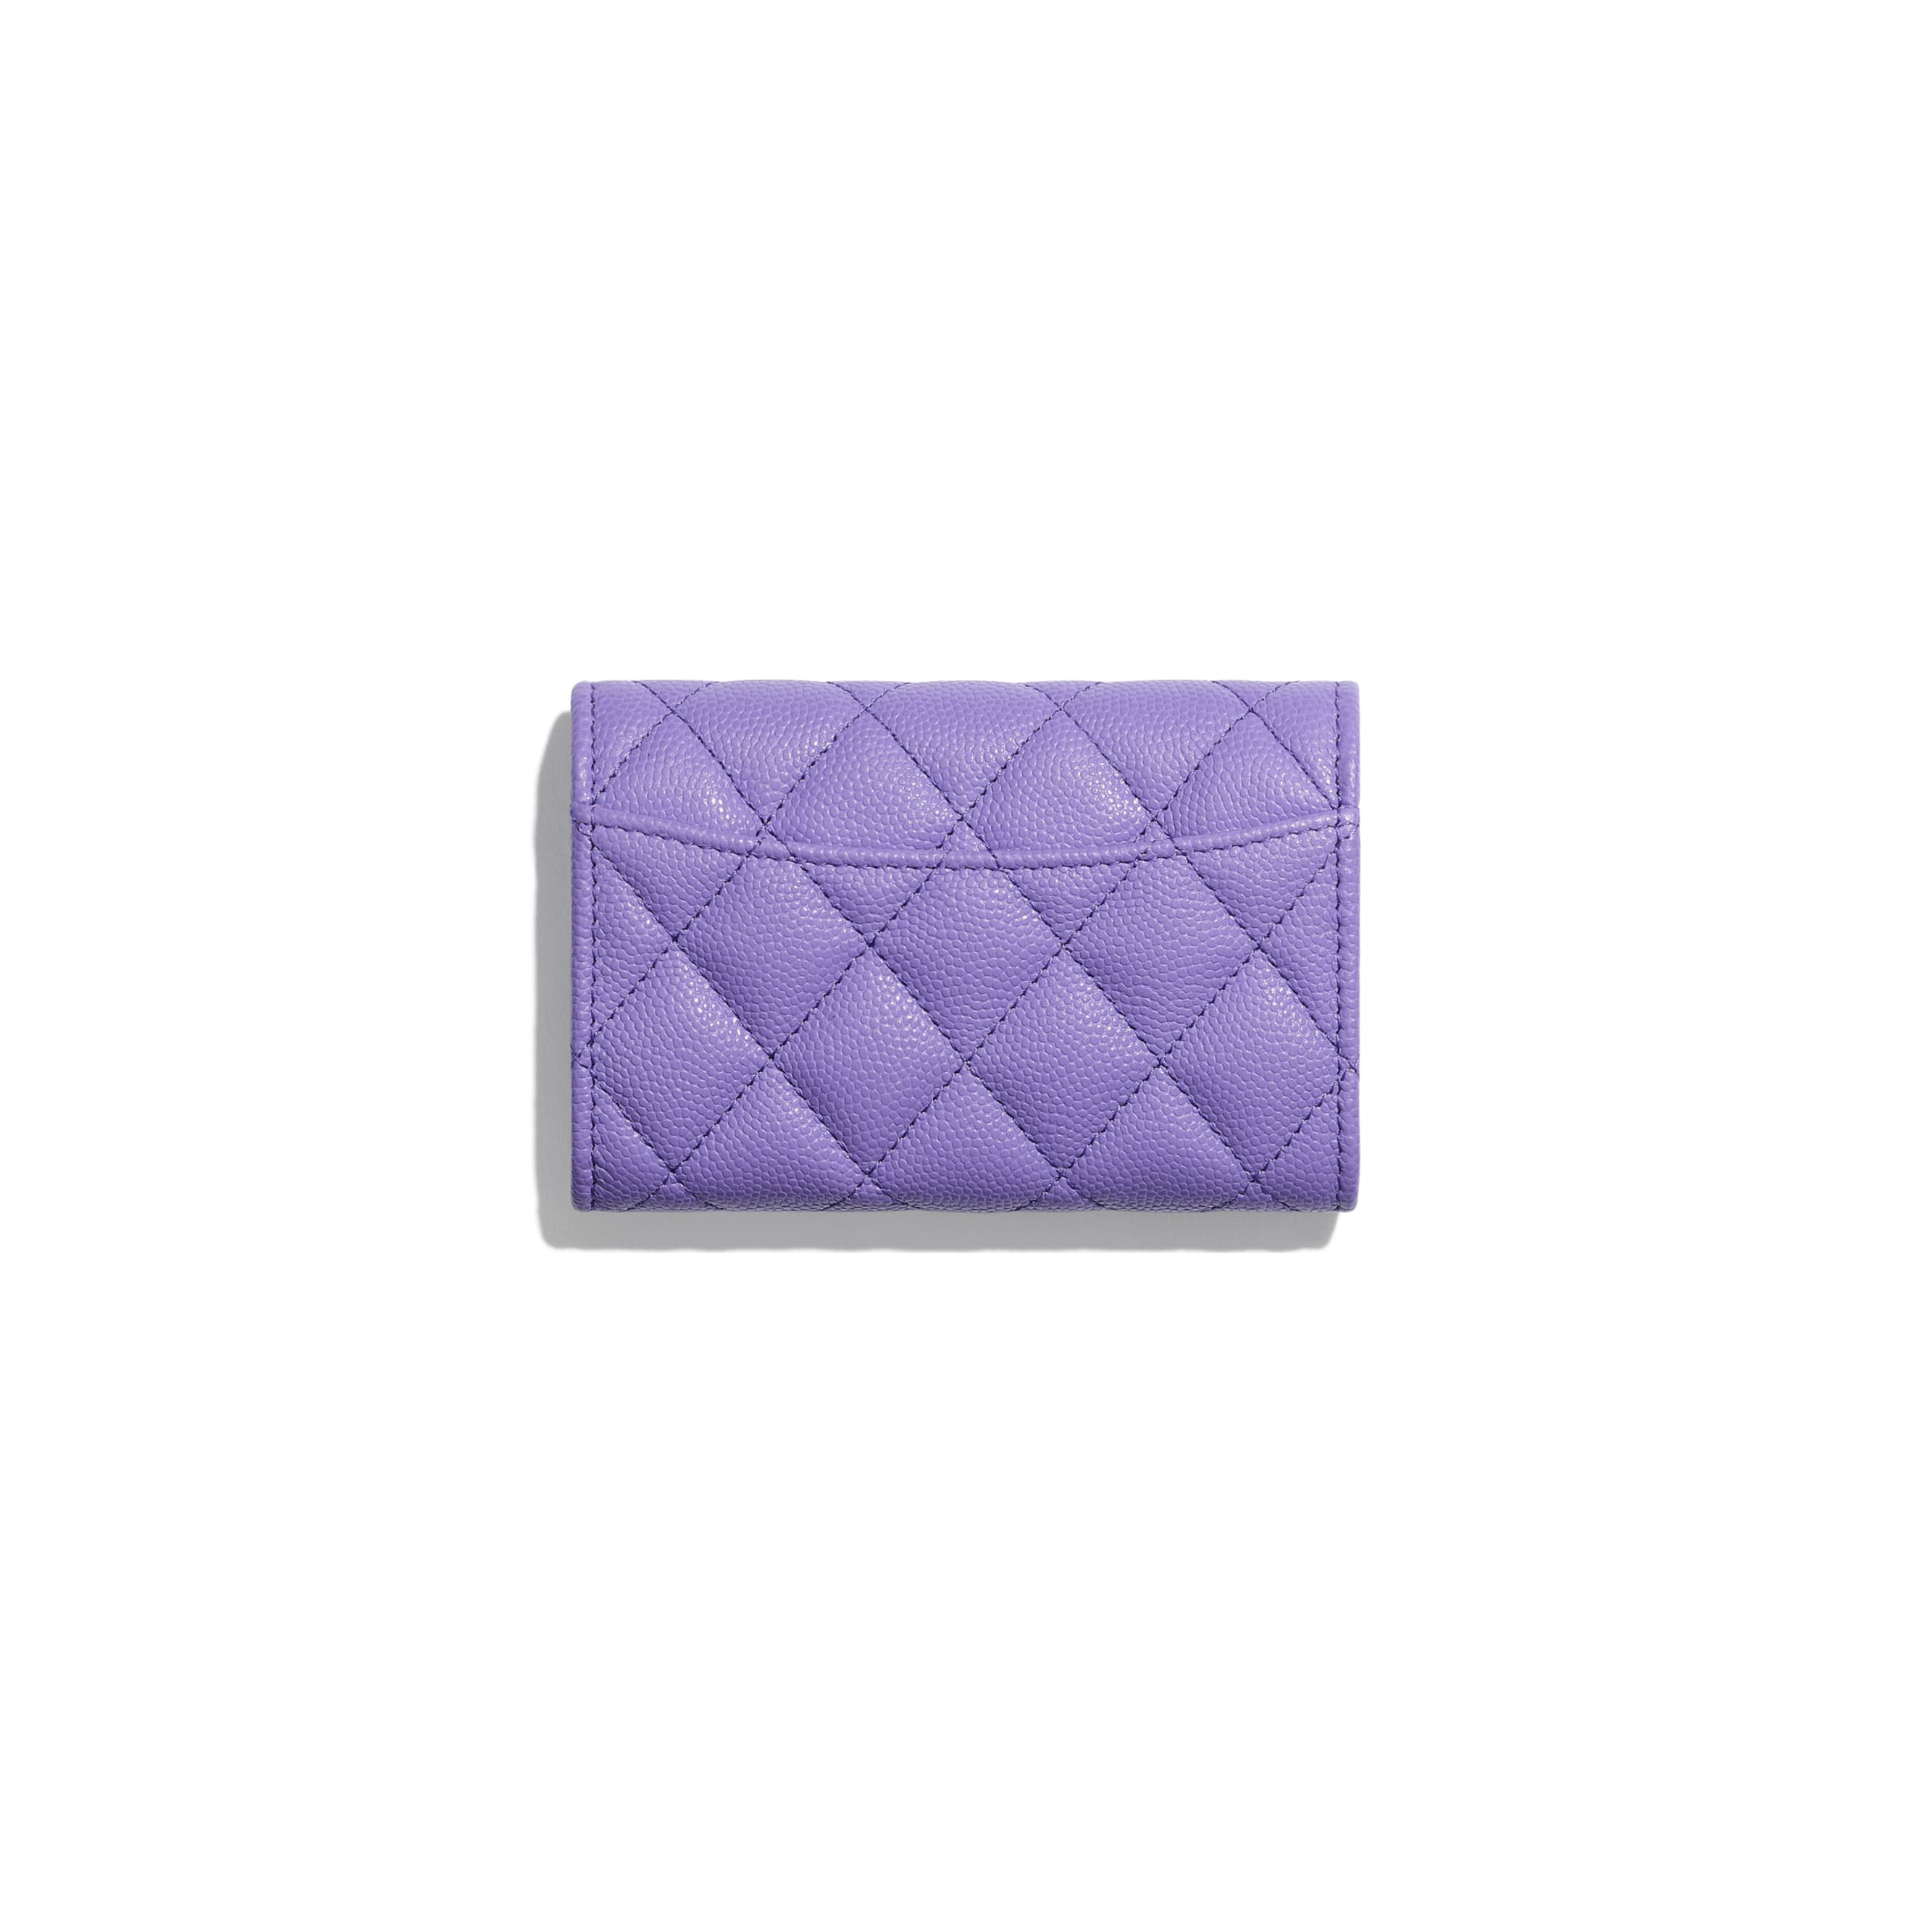 Classic Card Holder - Purple - Grained Calfskin & Gold-Tone Metal - CHANEL - Alternative view - see standard sized version